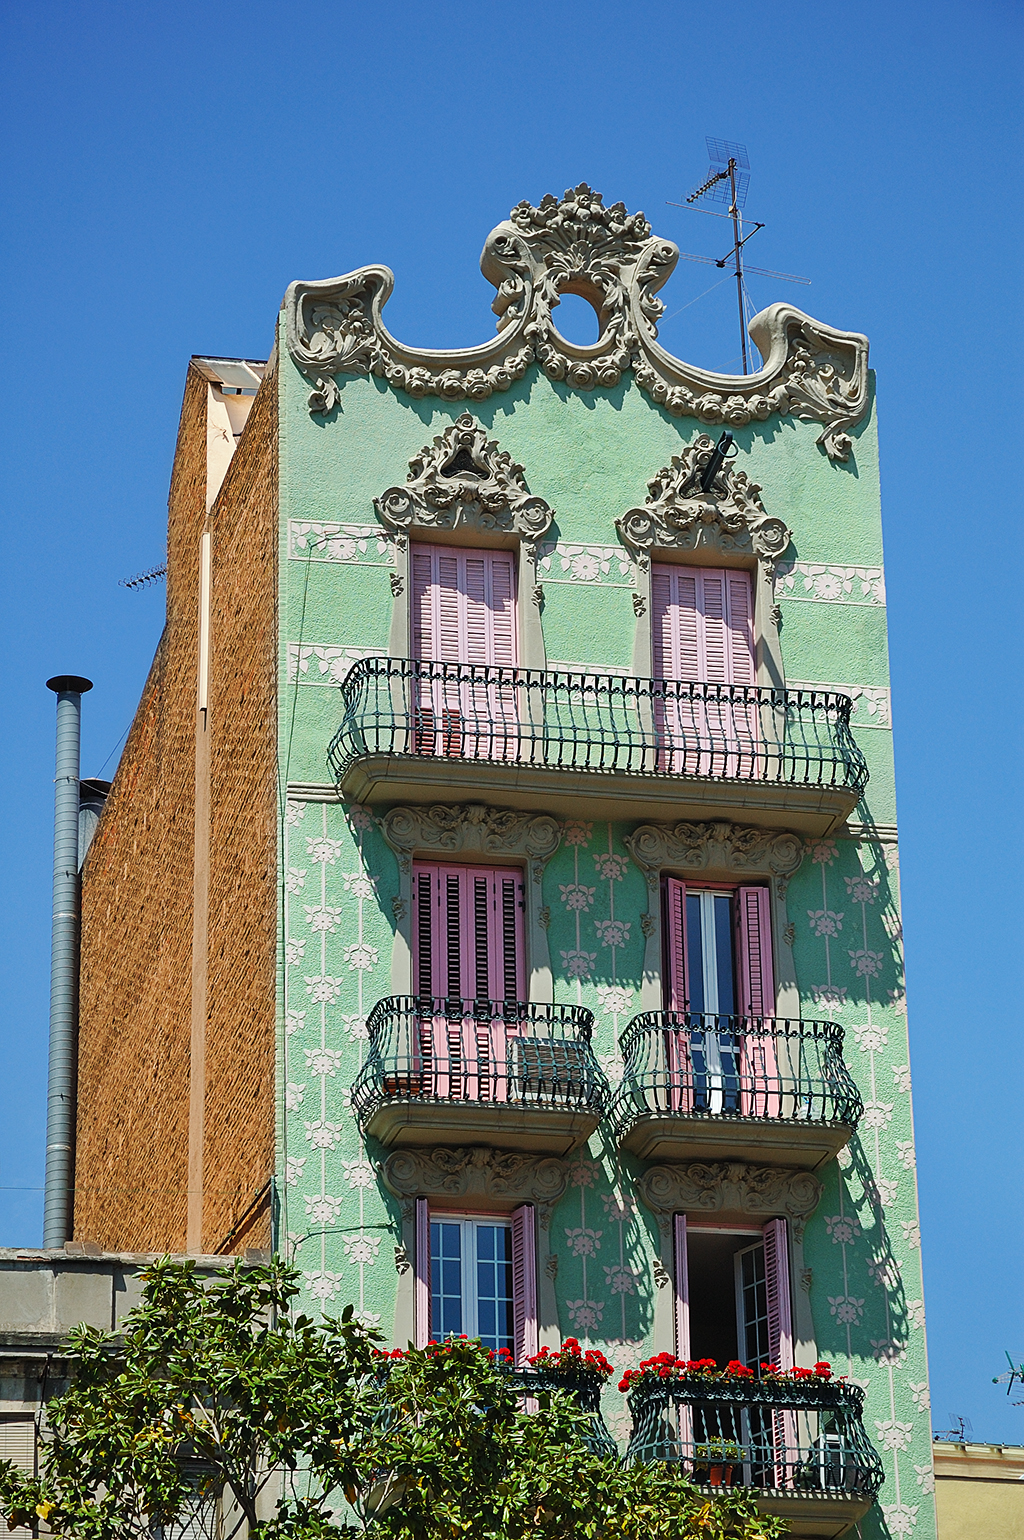 Modernist Building at Plaza del Sol, Gracia